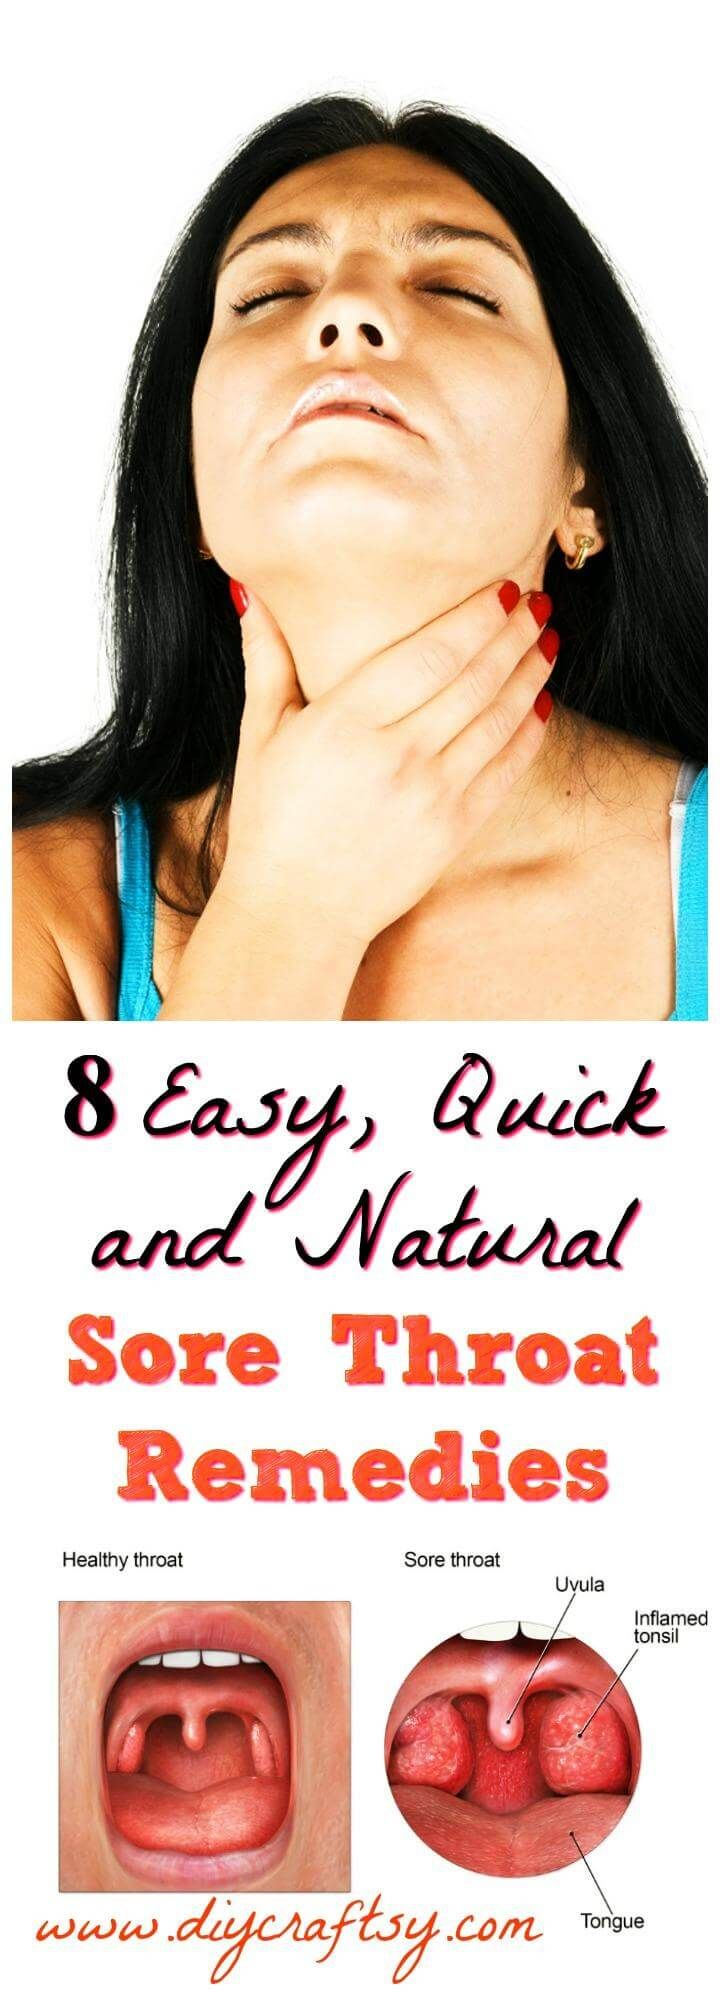 8 Easy, Quick and Natural Sore Throat Remedies (With